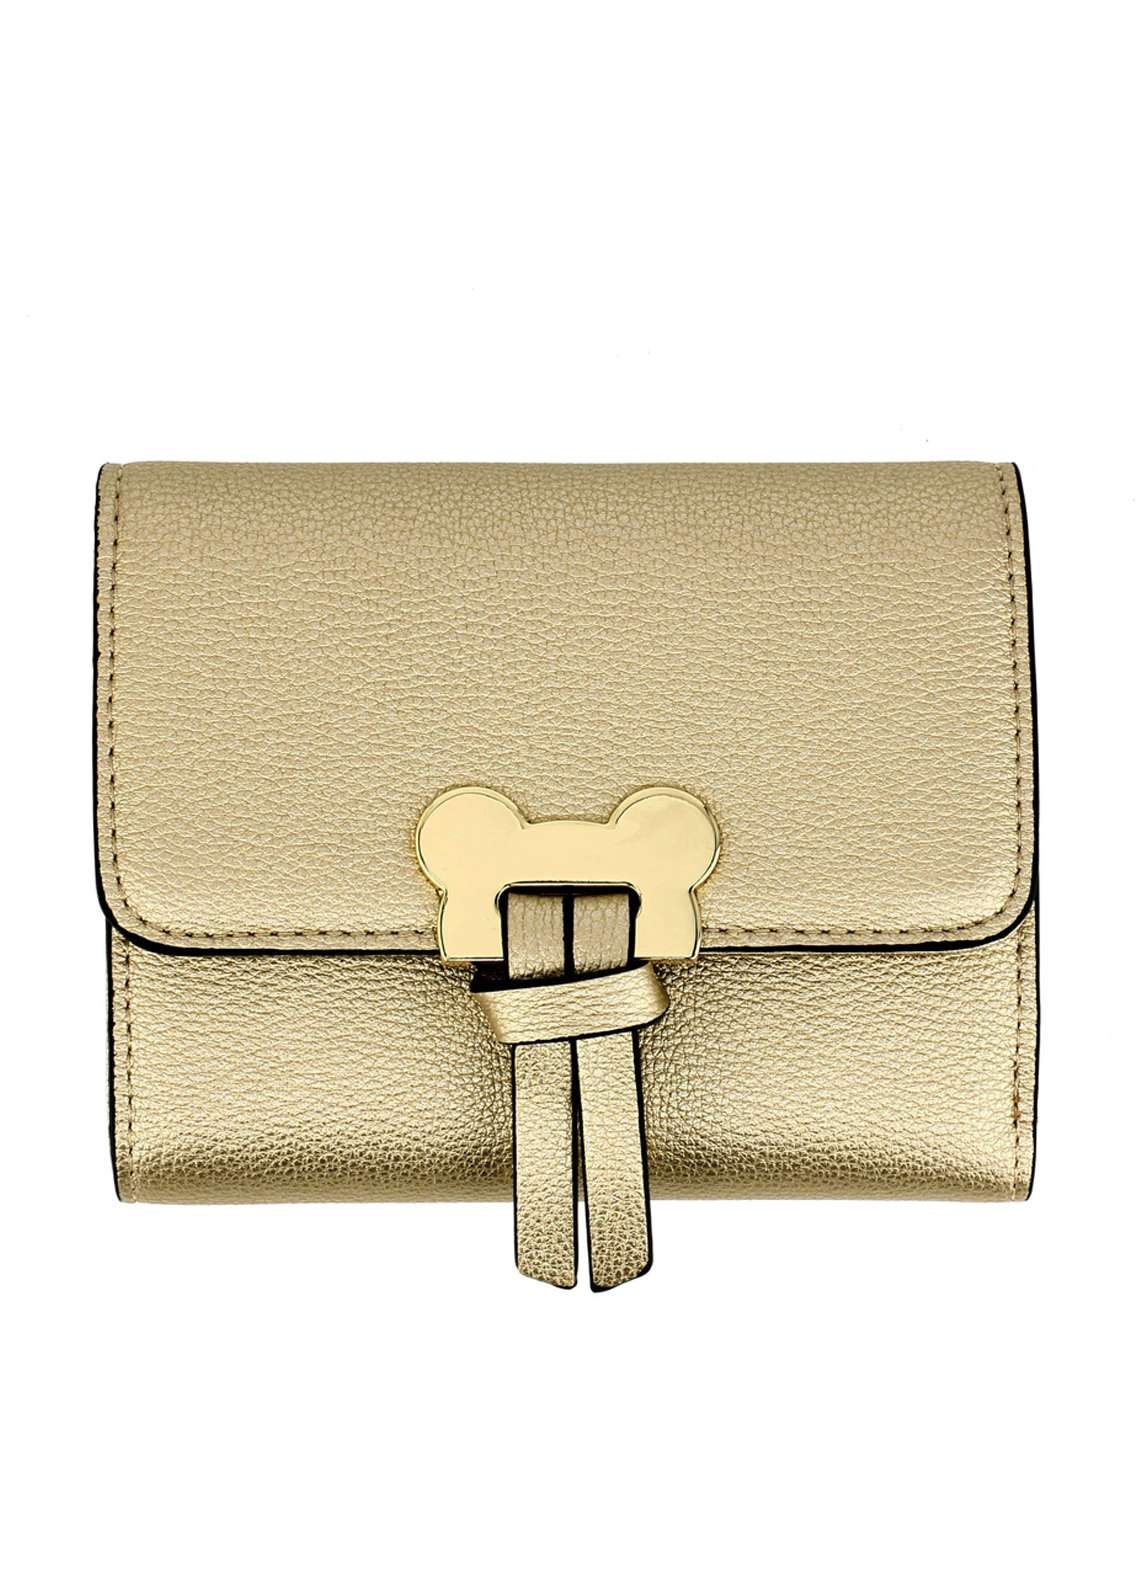 Anna Grace London Faux Leather Flap Purse Wallets  for Women  Gold with Gold Metal Work